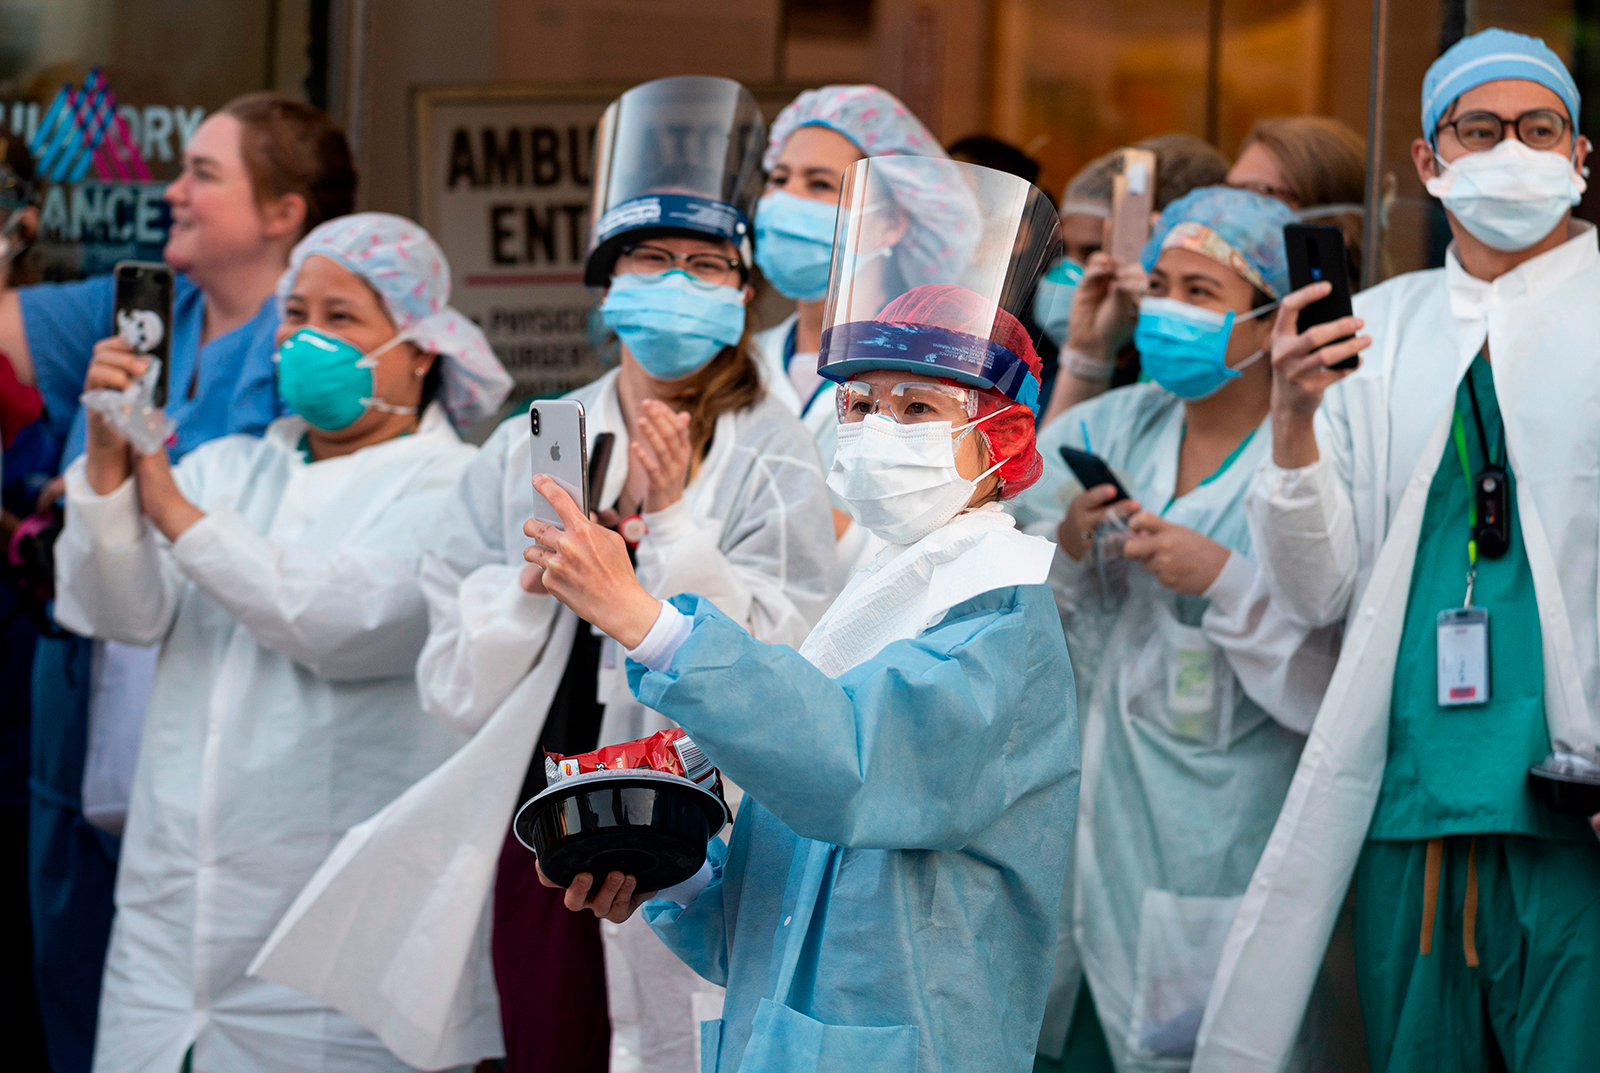 Healthcare workers react to people applauding in front of the Mount Sinai Hospital in Queens to show gratitude to medical staff and essential workers on the front lines of the coronavirus pandemic, on Wednesday, April 15.